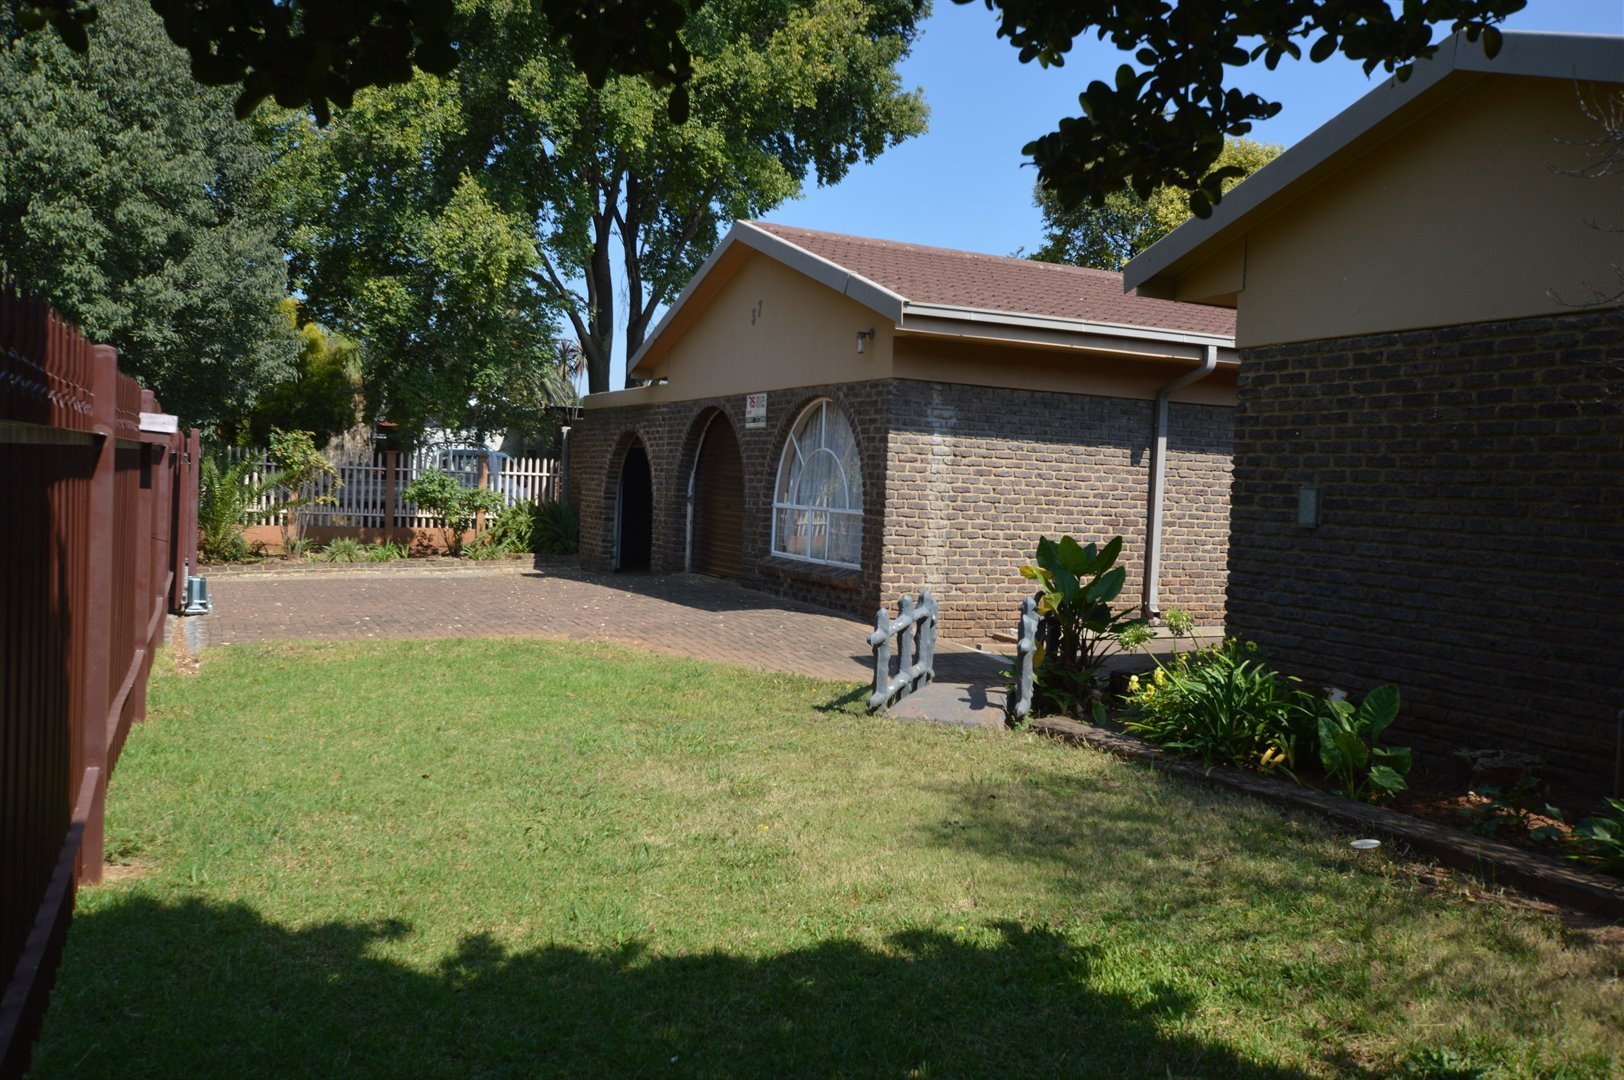 Vanderbijlpark Se 2 property for sale. Ref No: 13623209. Picture no 40